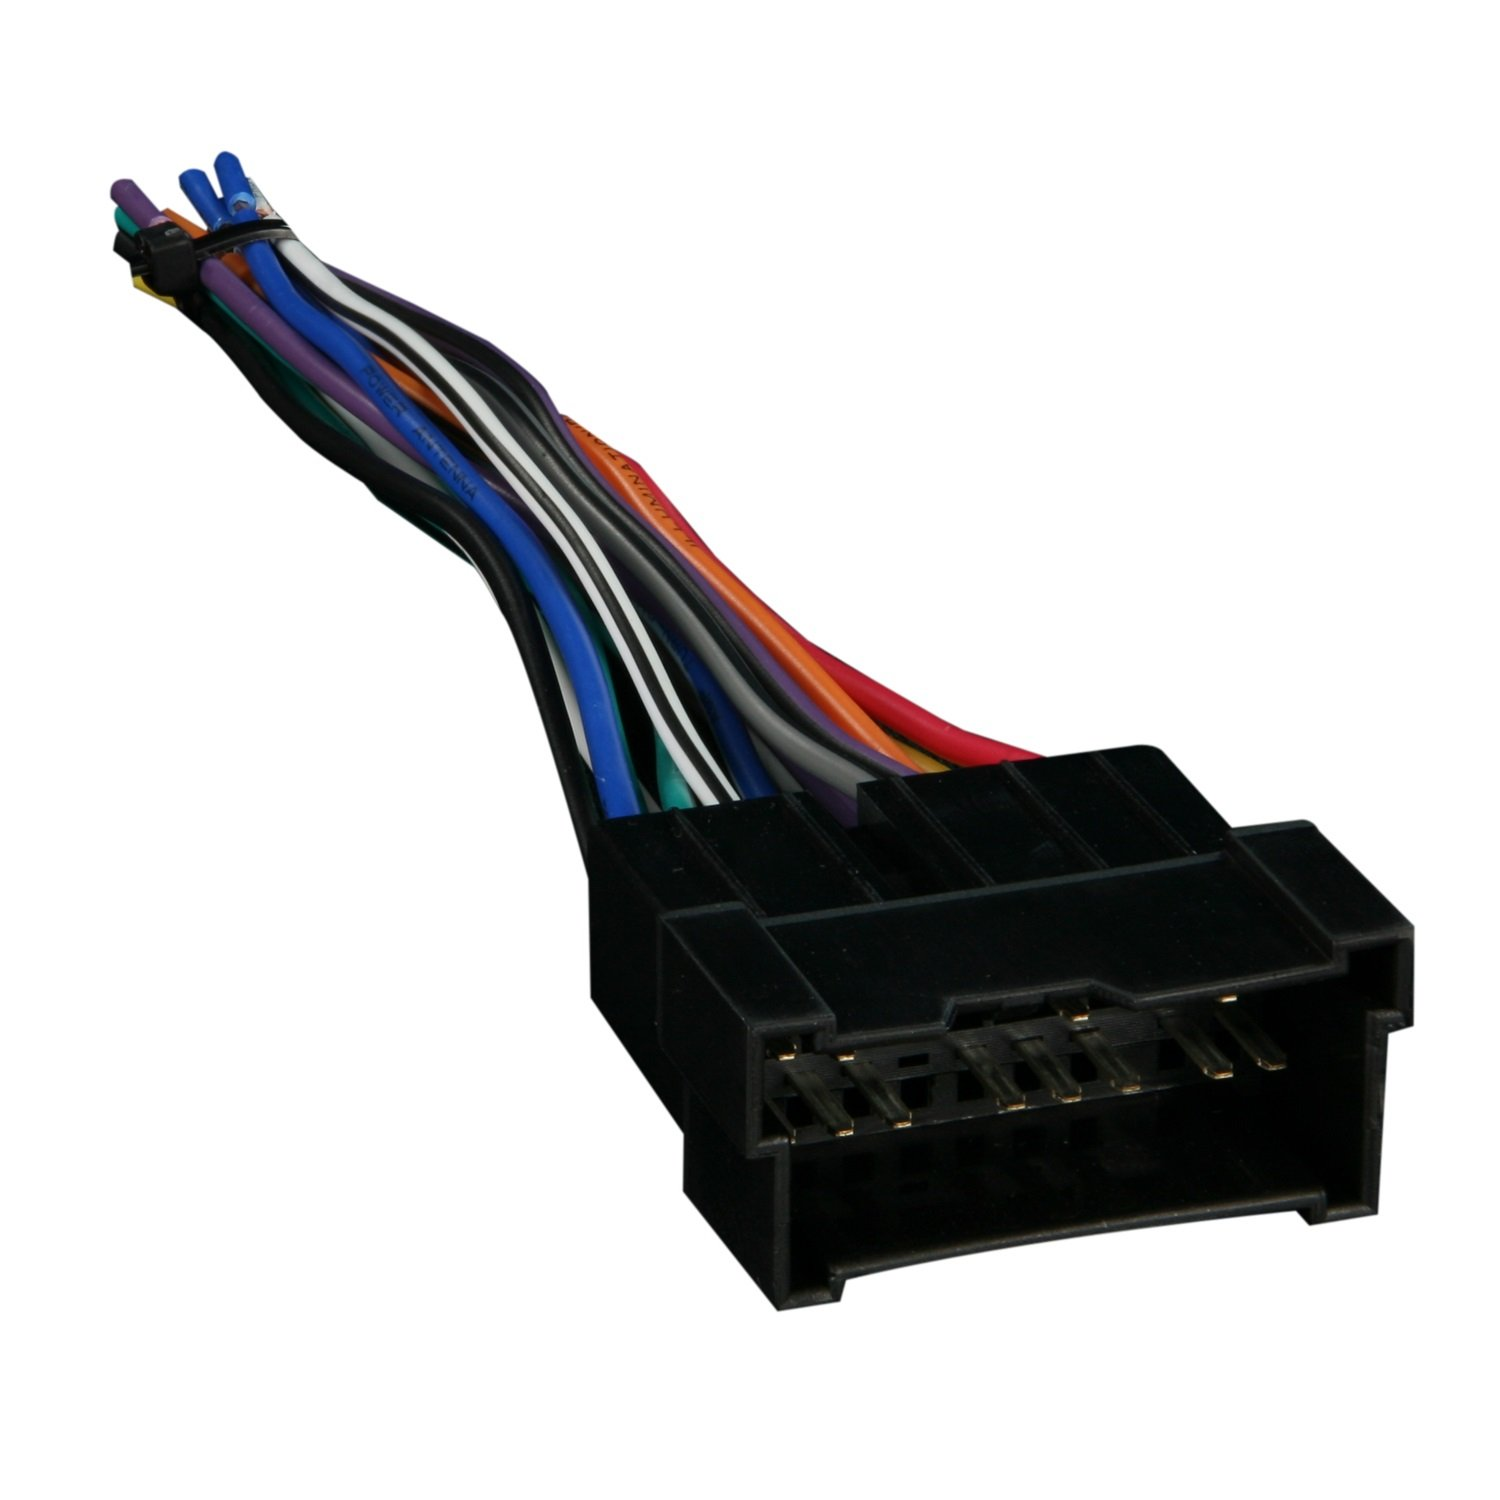 617yeBmOquL._SL1500_ amazon com metra 70 7301 radio wiring harness for hyundai kia 99 wire harness doesn't fit at eliteediting.co